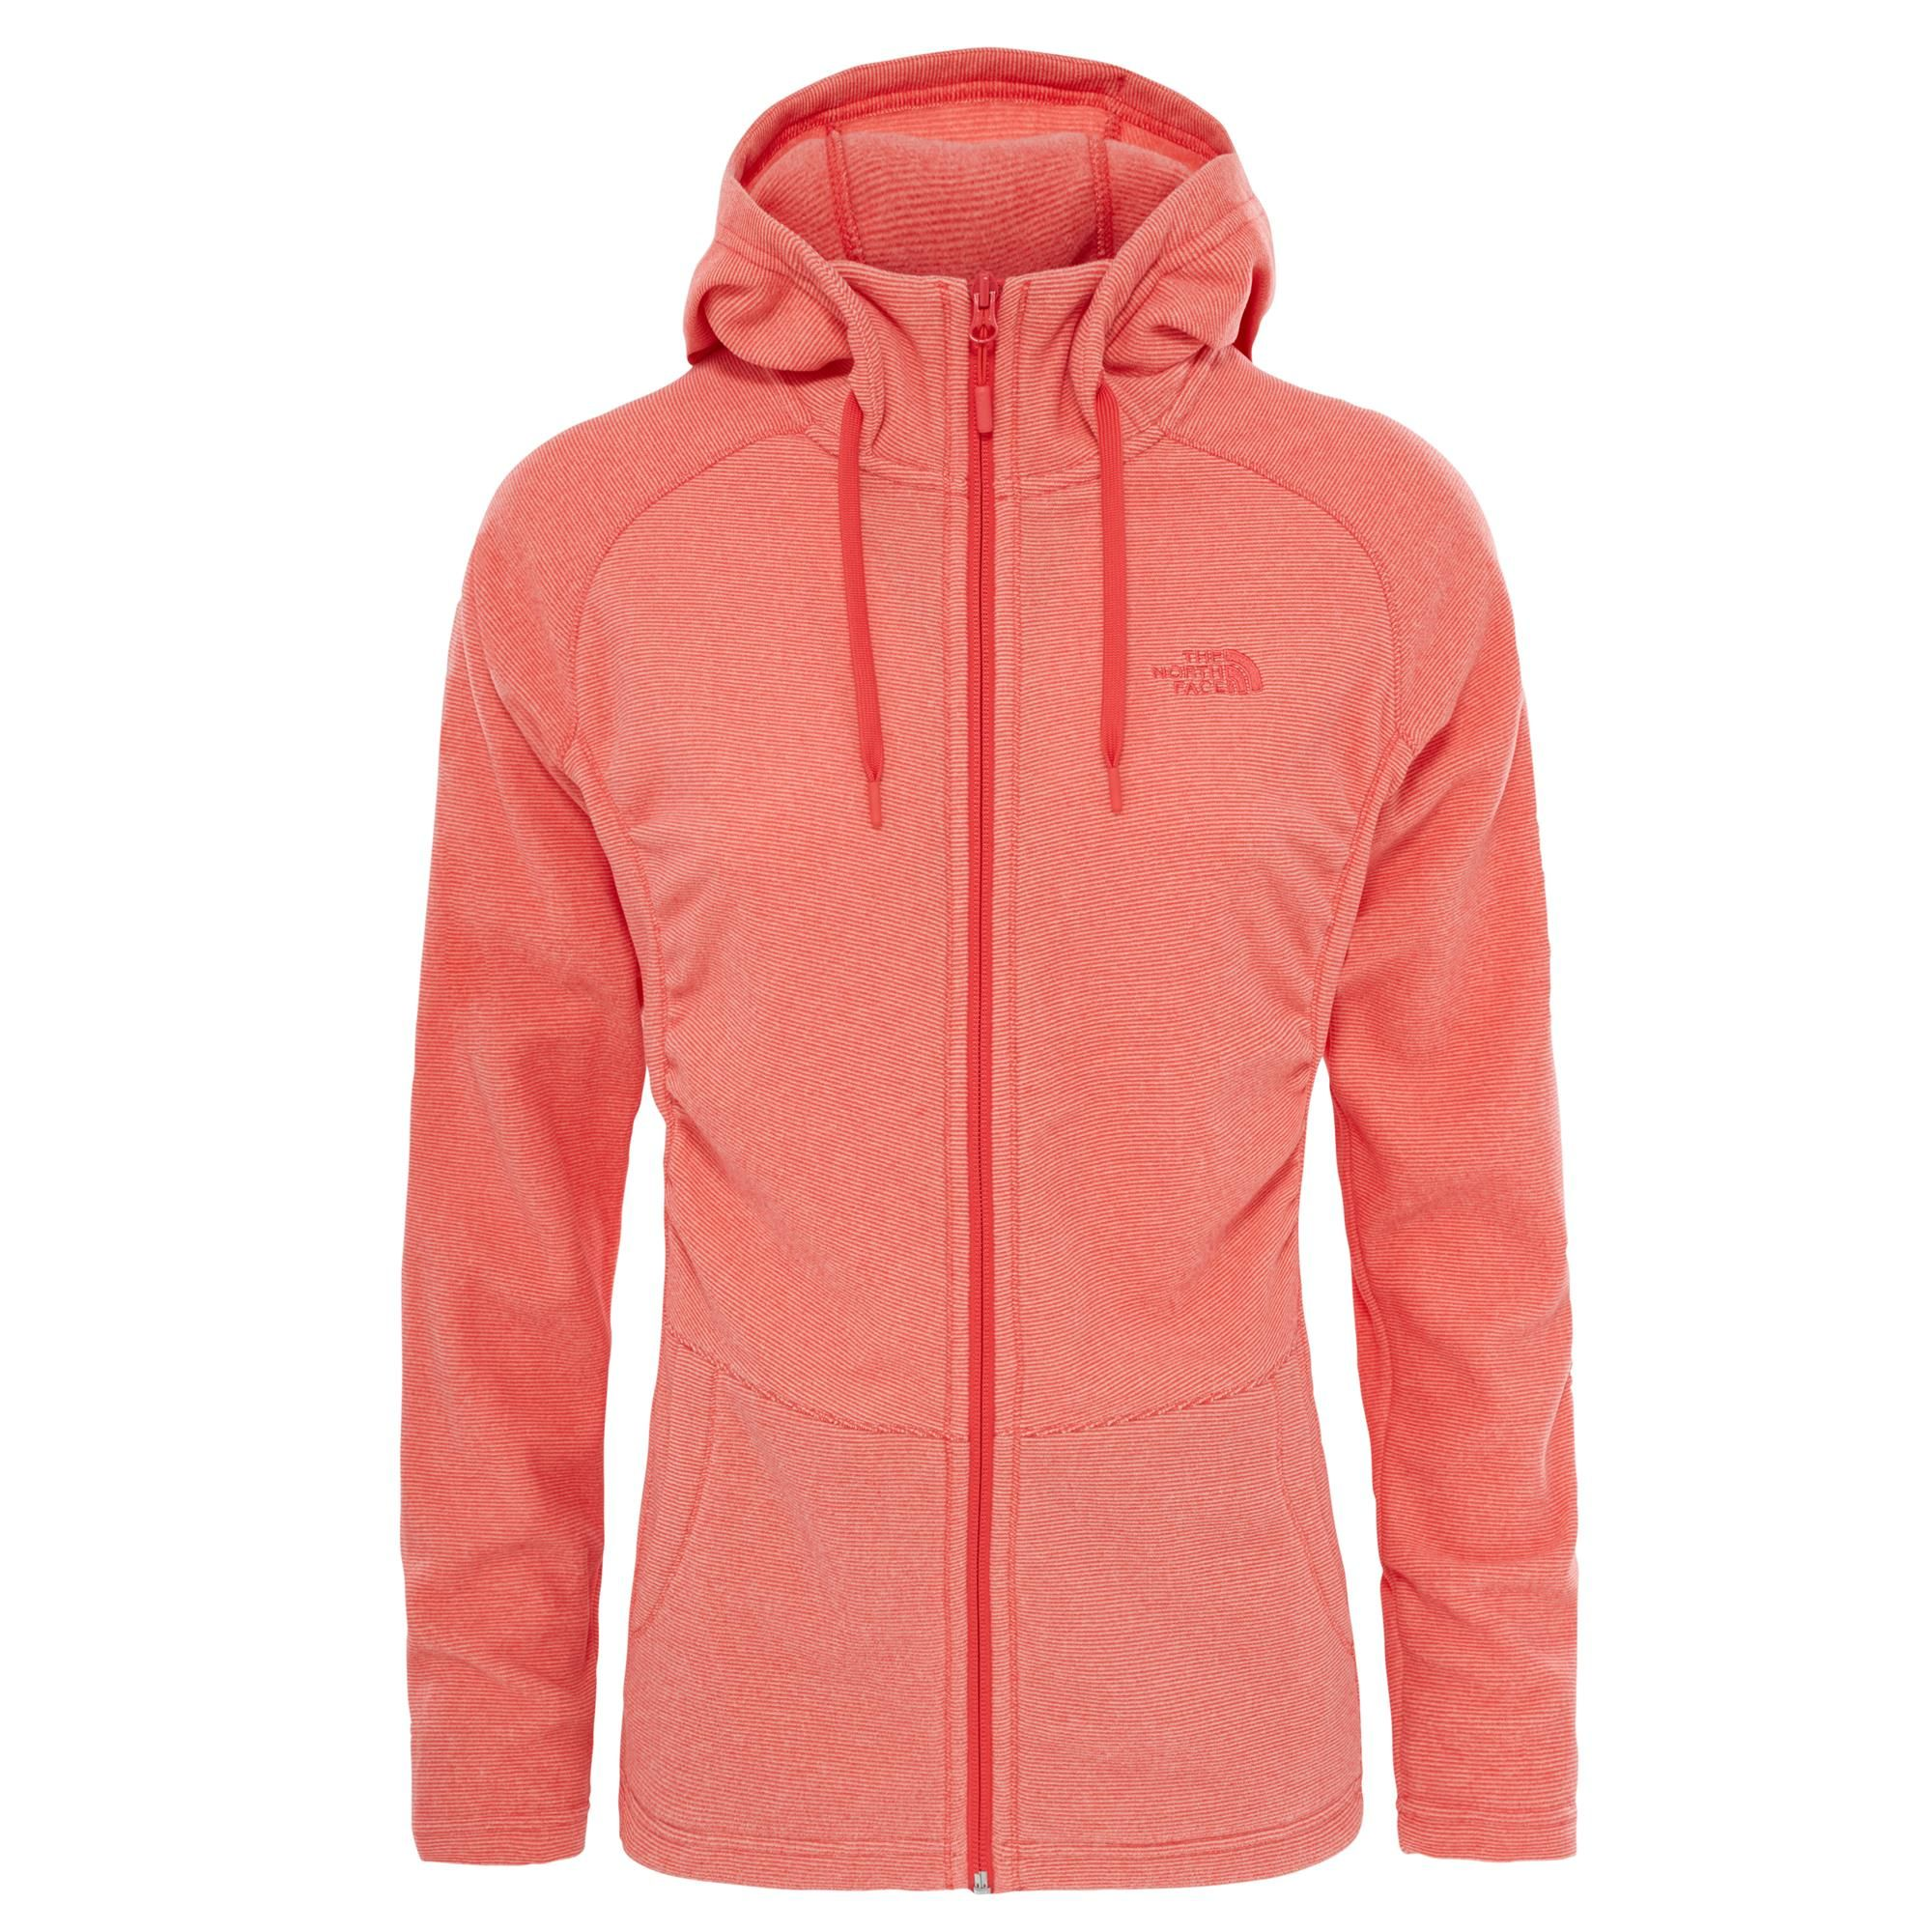 official photos 9f4d3 1fac8 Xtend-Angebote The North Face W Mezzaluna Full Zip Hoodie ...